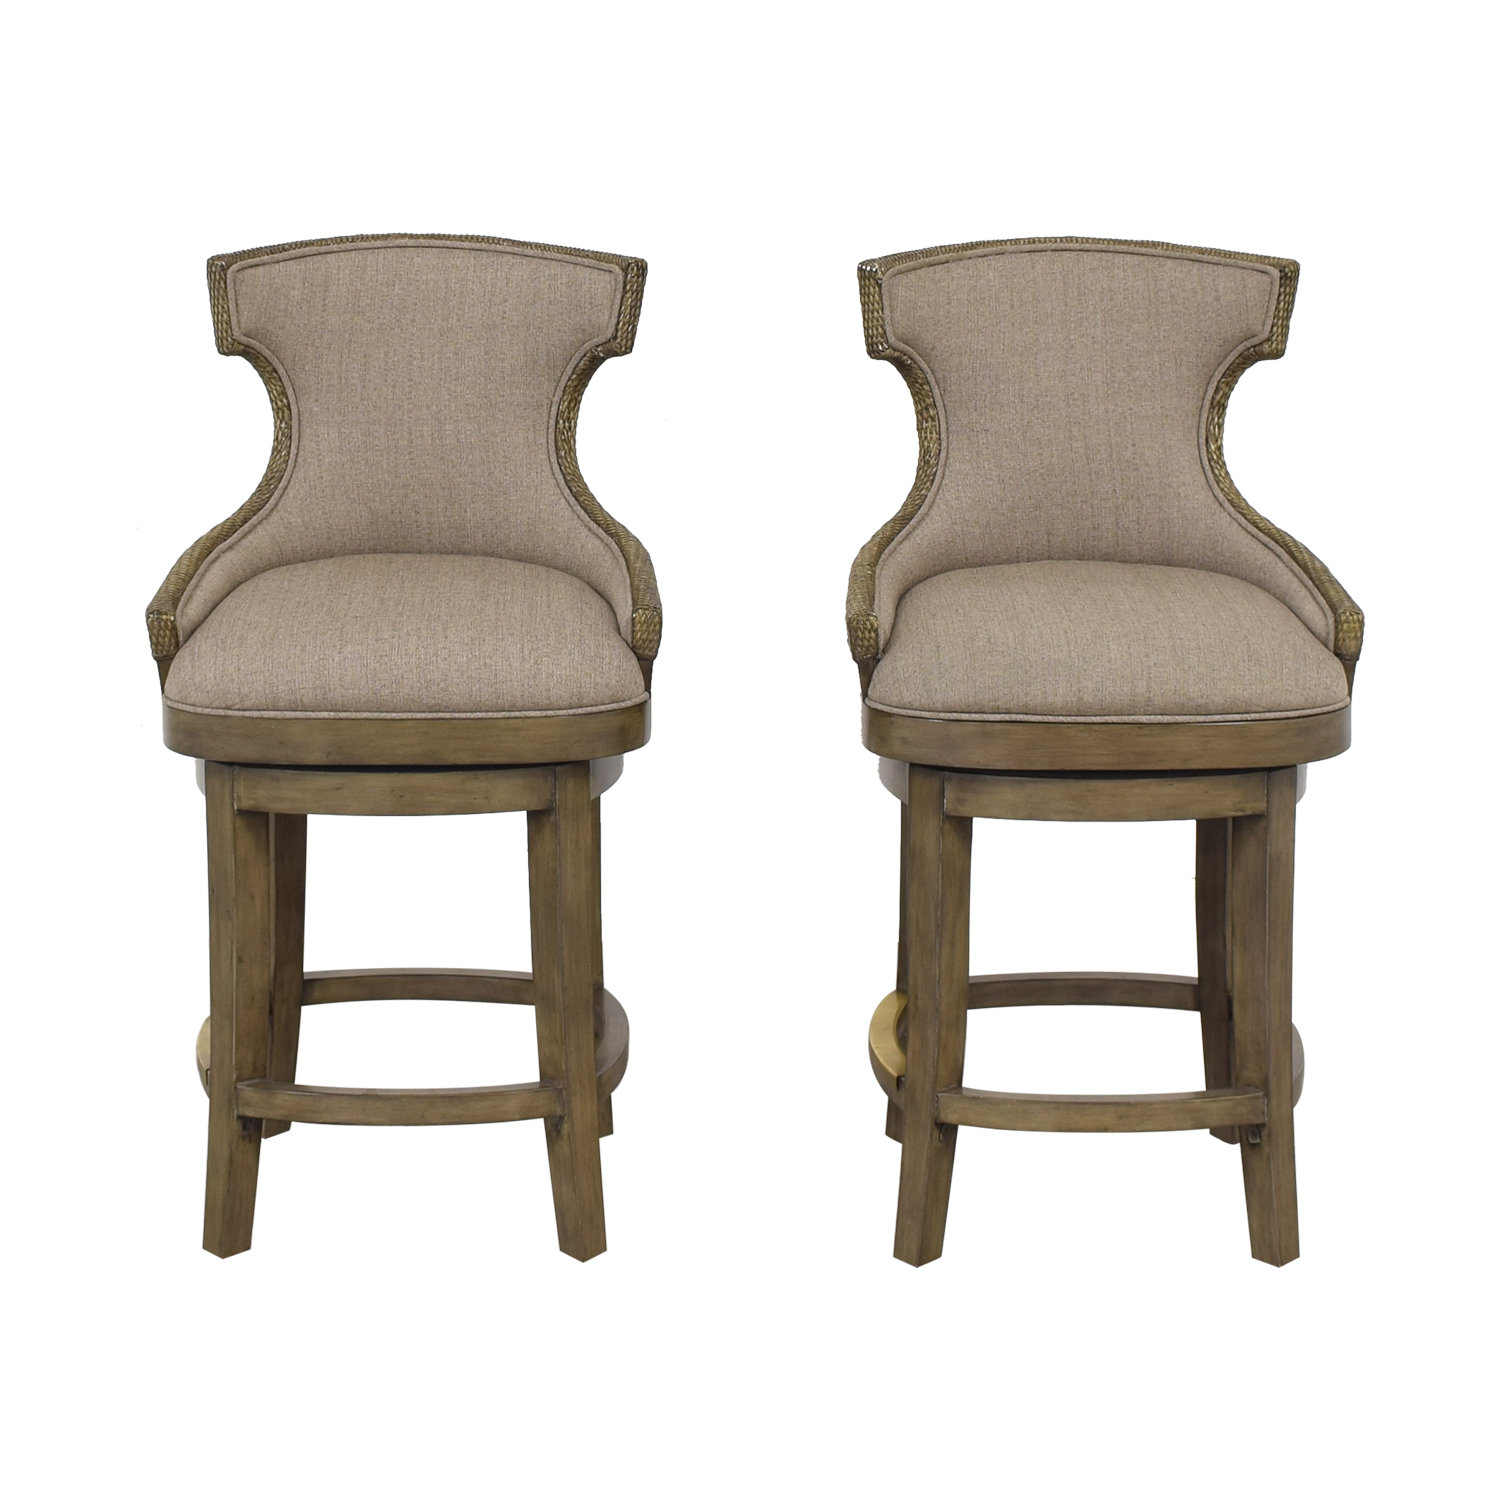 PI Inc Upholstered Swivel Bar Stools / Stools